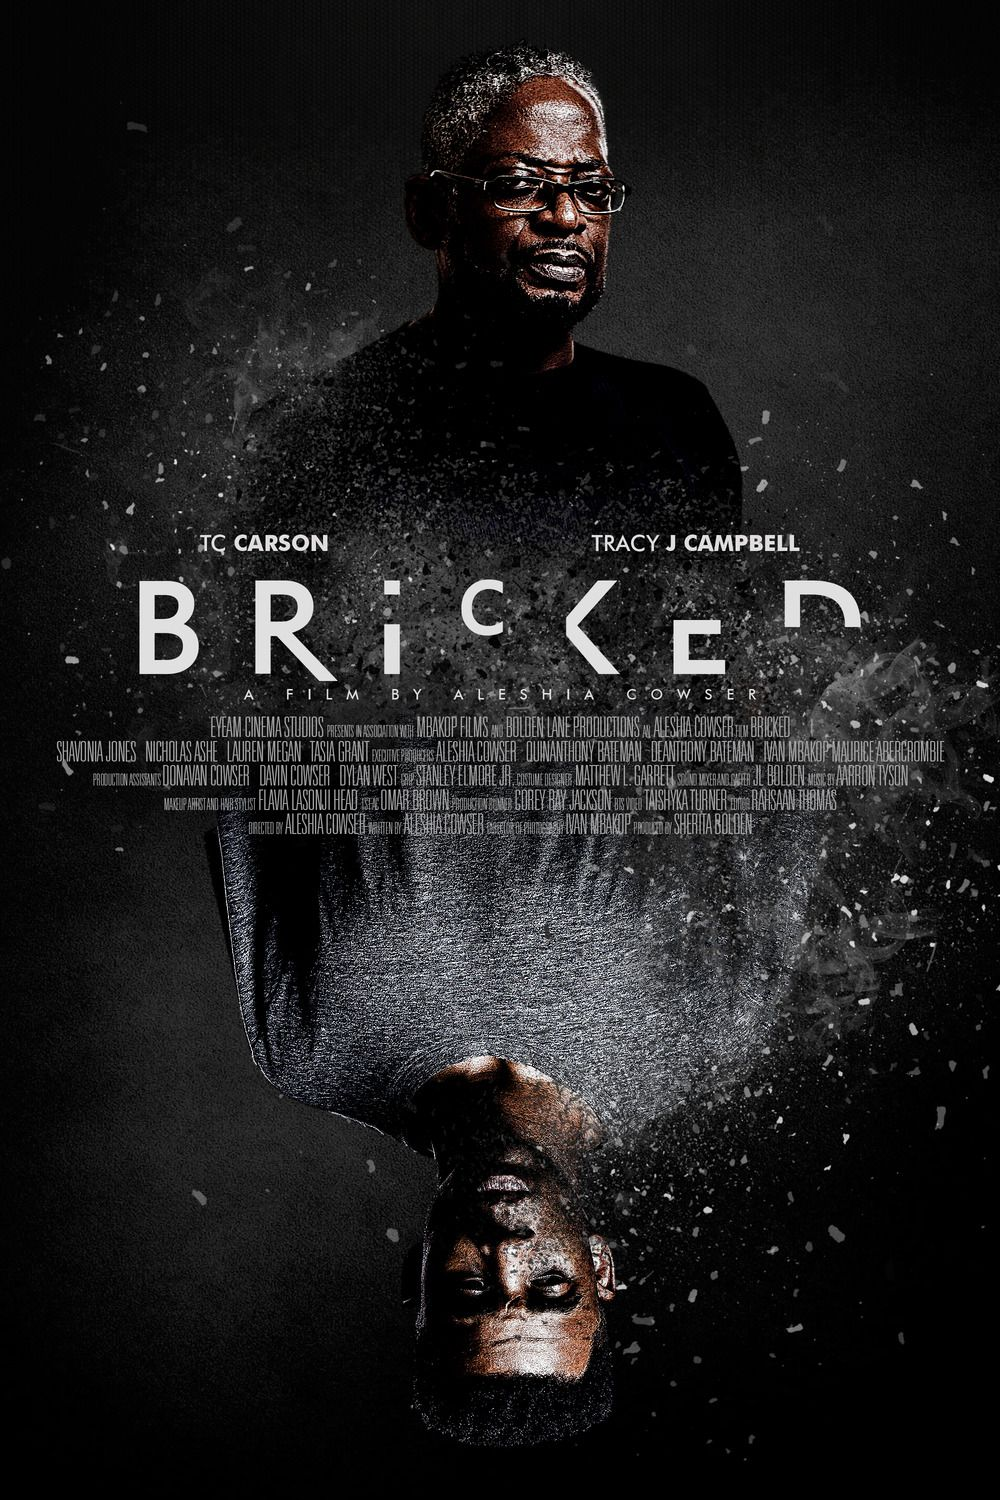 Return To The Main Poster Page For Bricked Full Movies Online Free Free Movies Online Movies Online